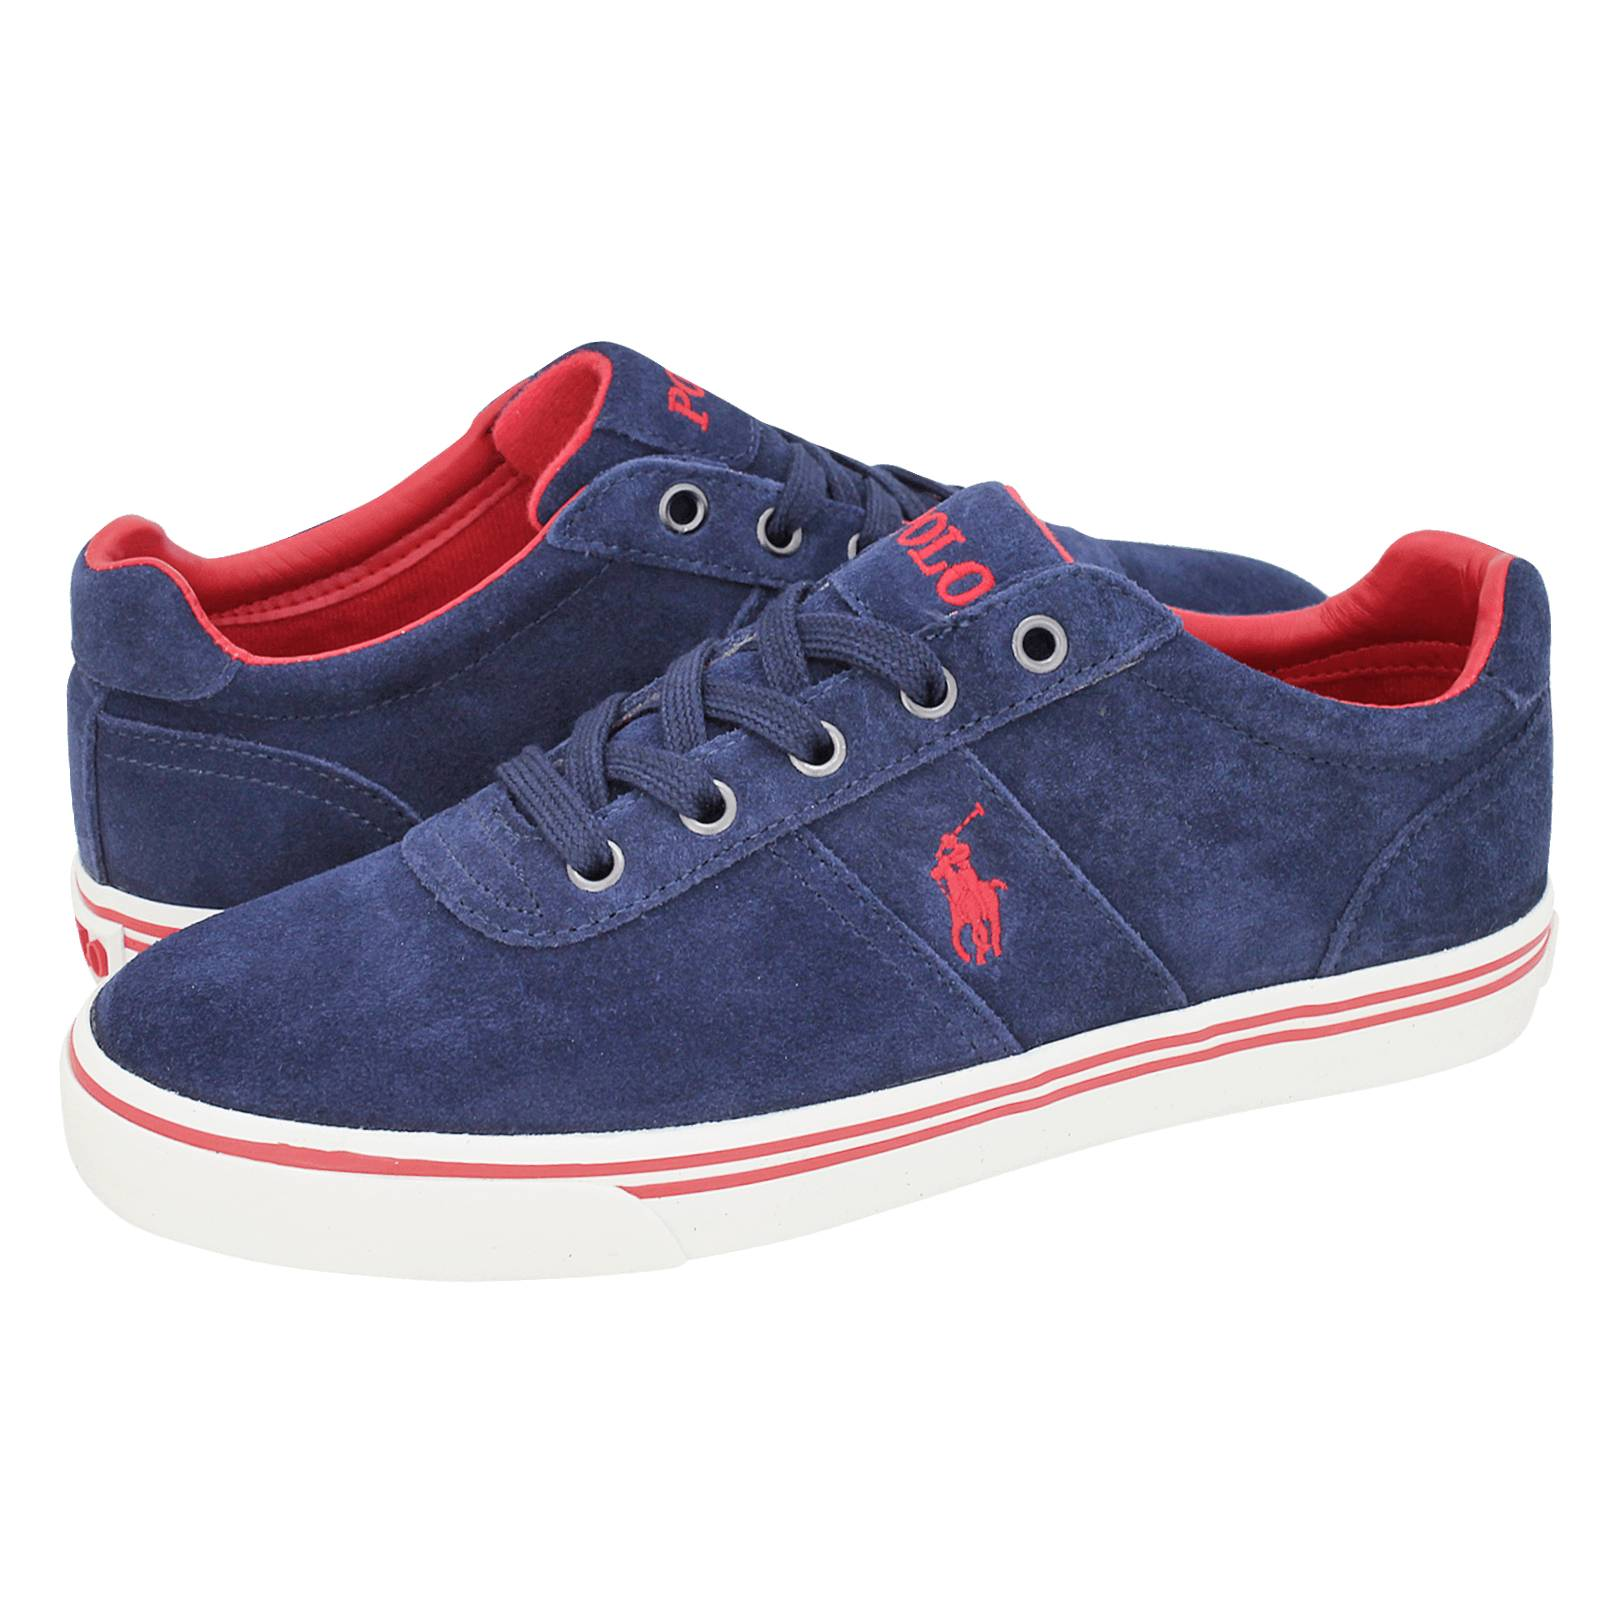 Hanford Lauren Vulc Ralph Casual Shoes Sneakers Polo H9IE2D